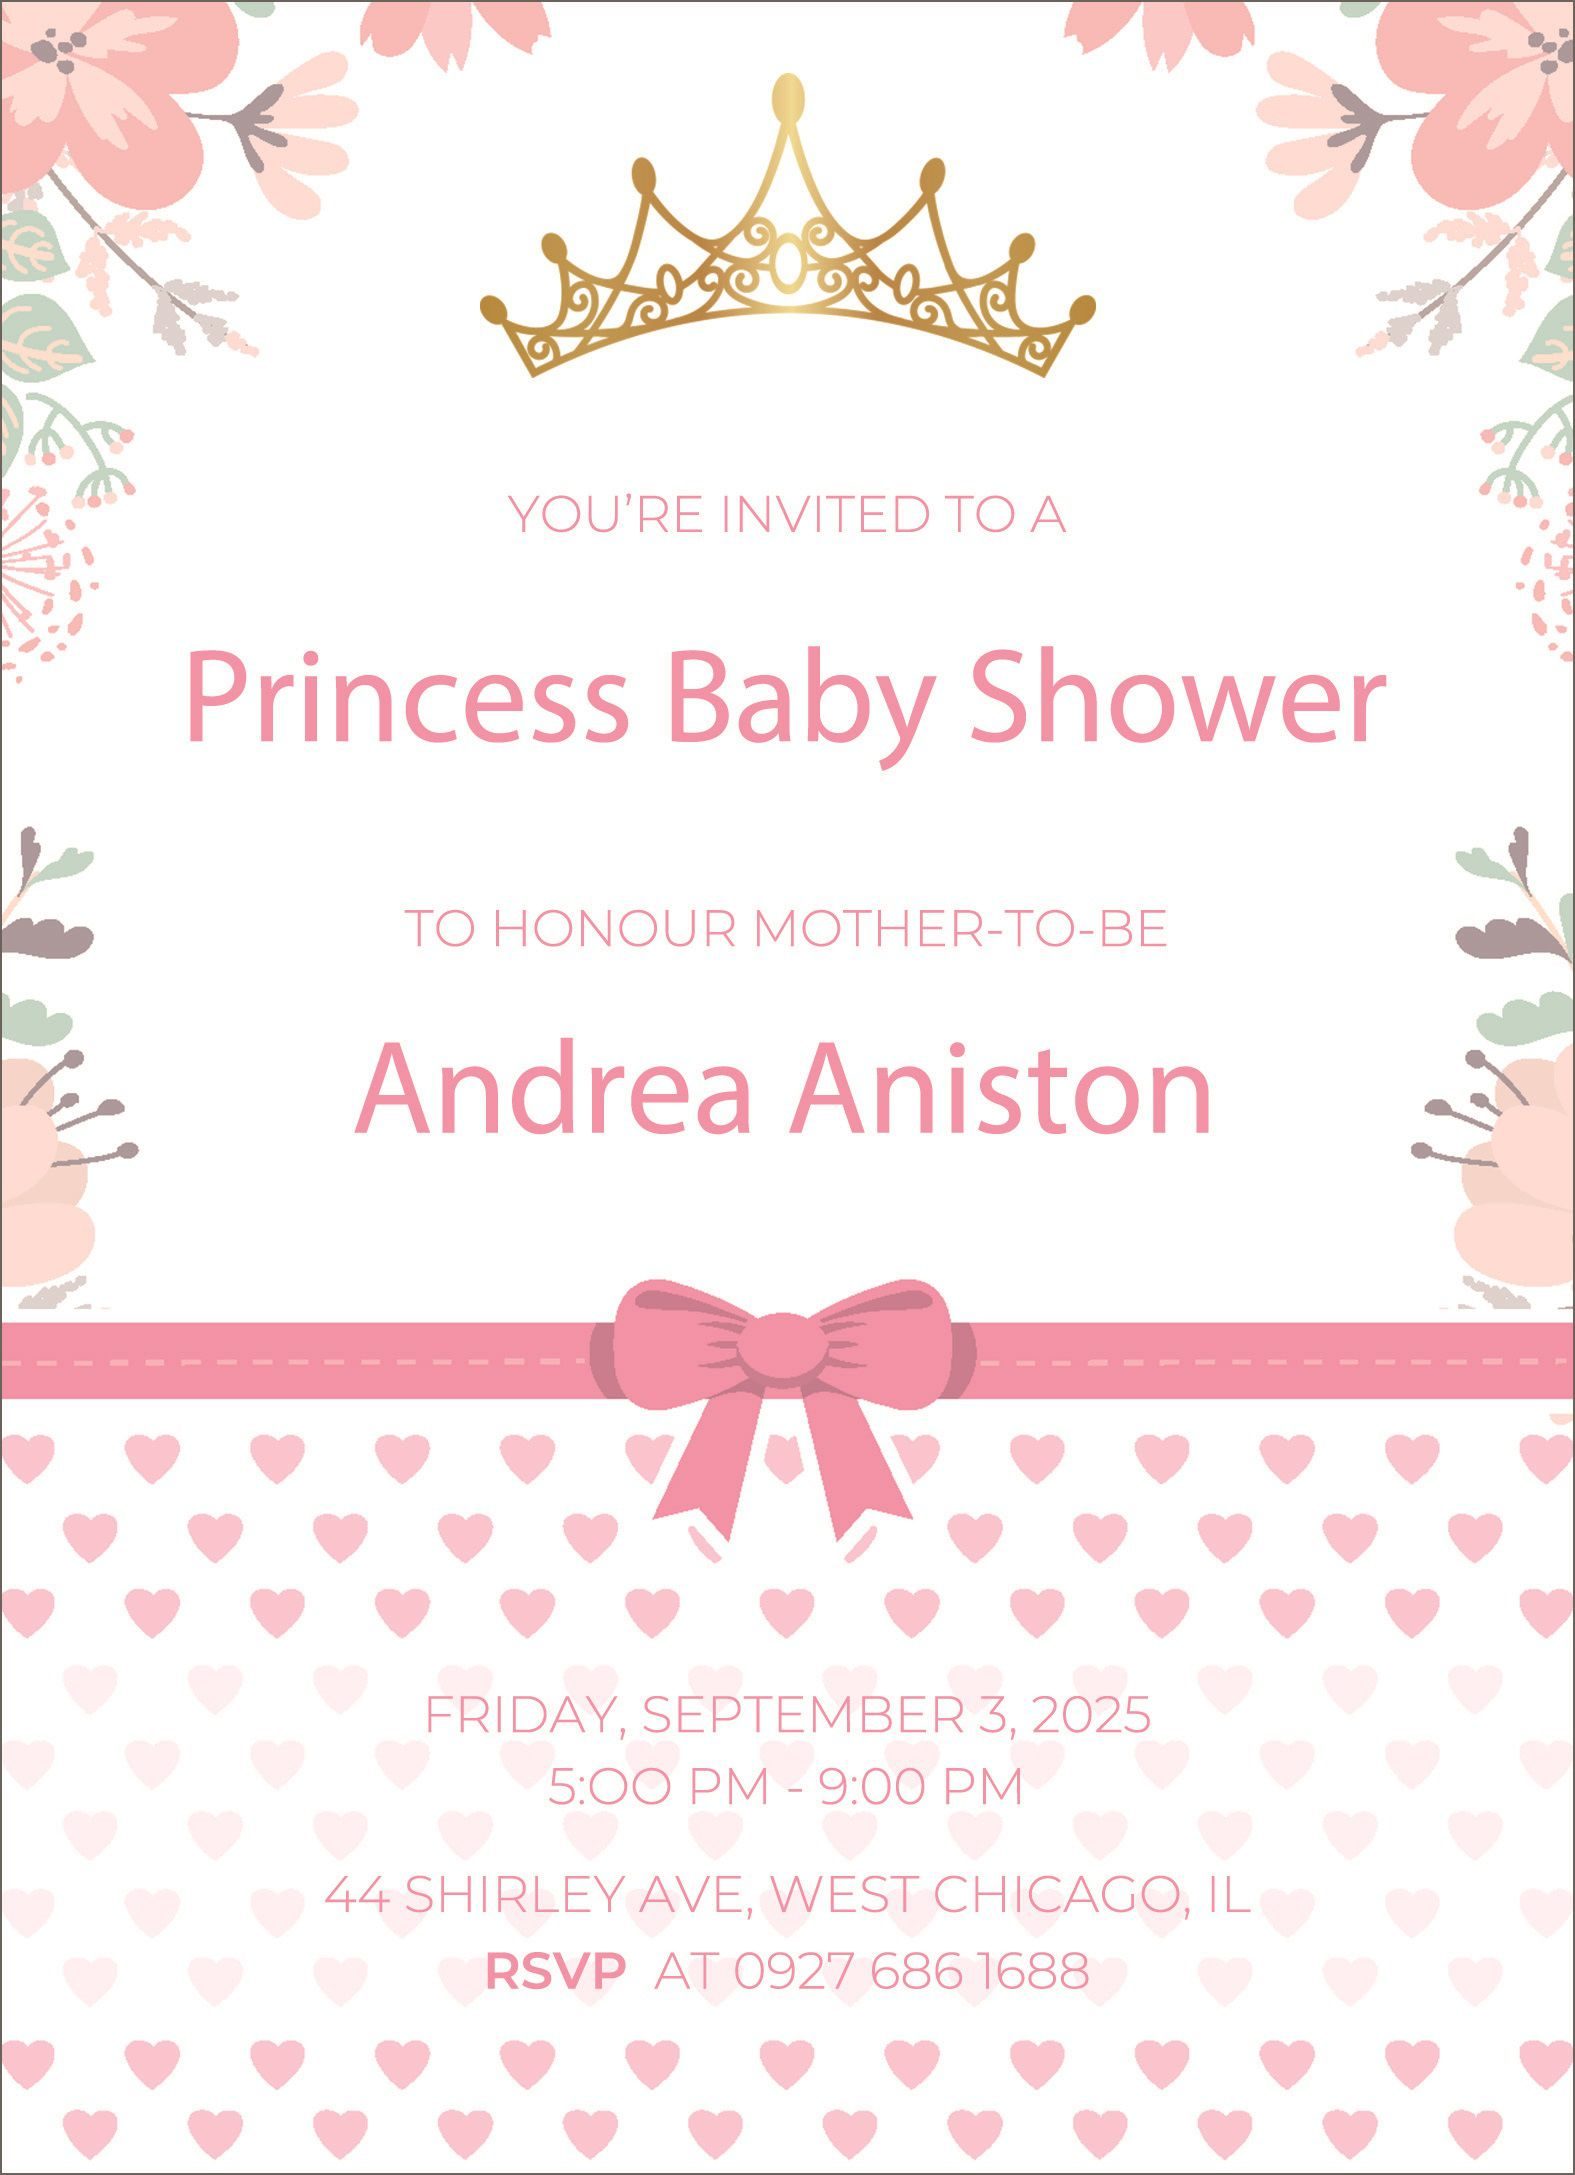 005 Fearsome Baby Shower Announcement Template High Resolution  Templates Invitation India Indian Free With PhotoFull